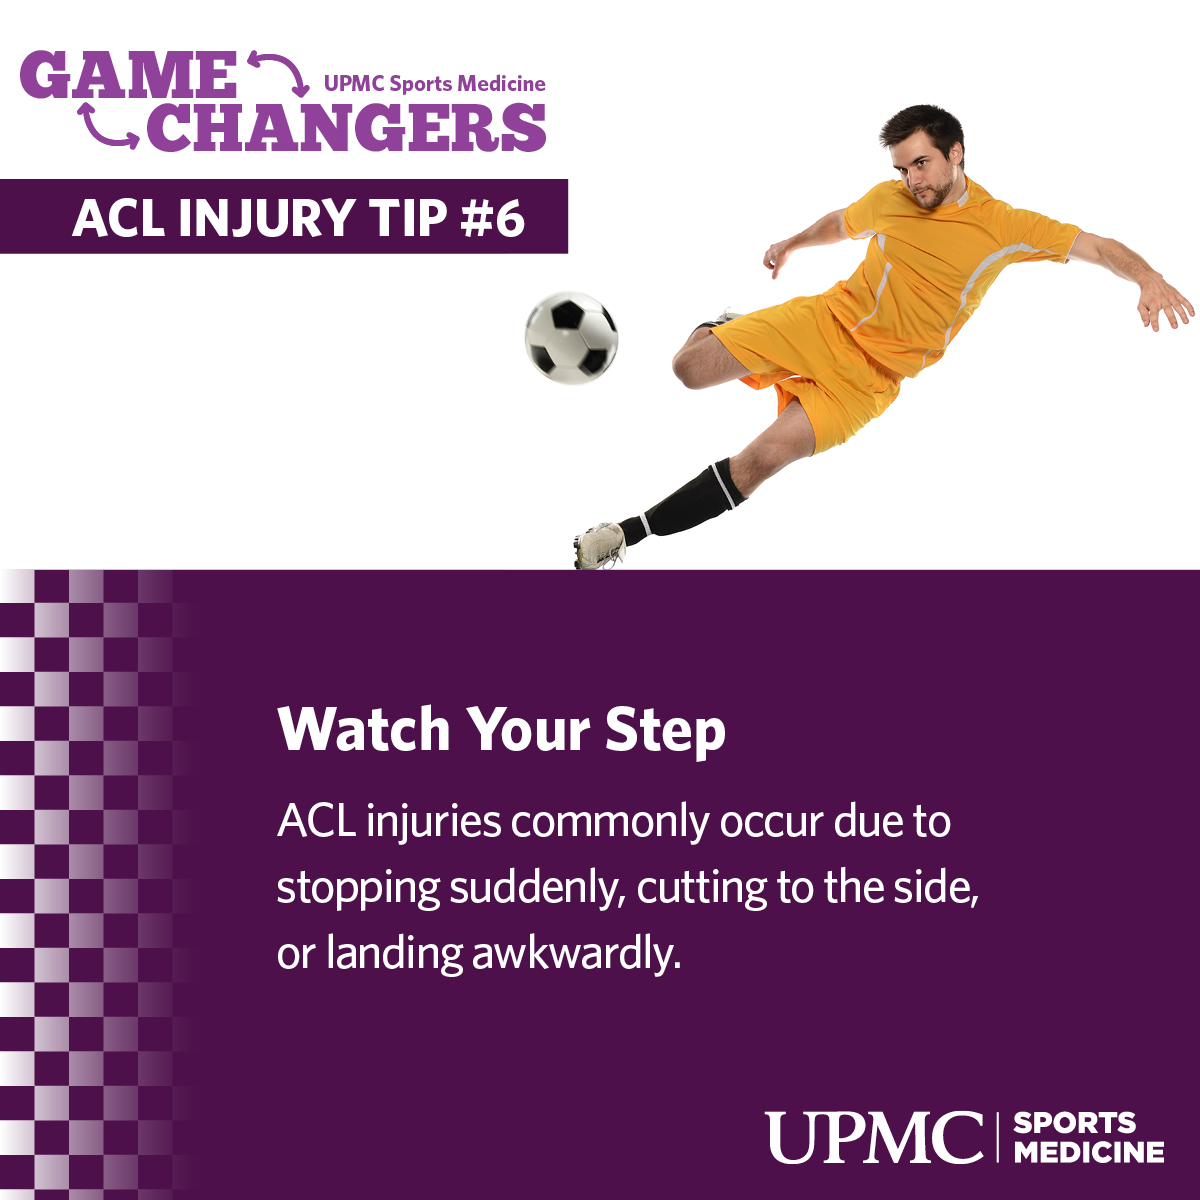 UPMC_GameChangers_ACL_FB6_FINAL